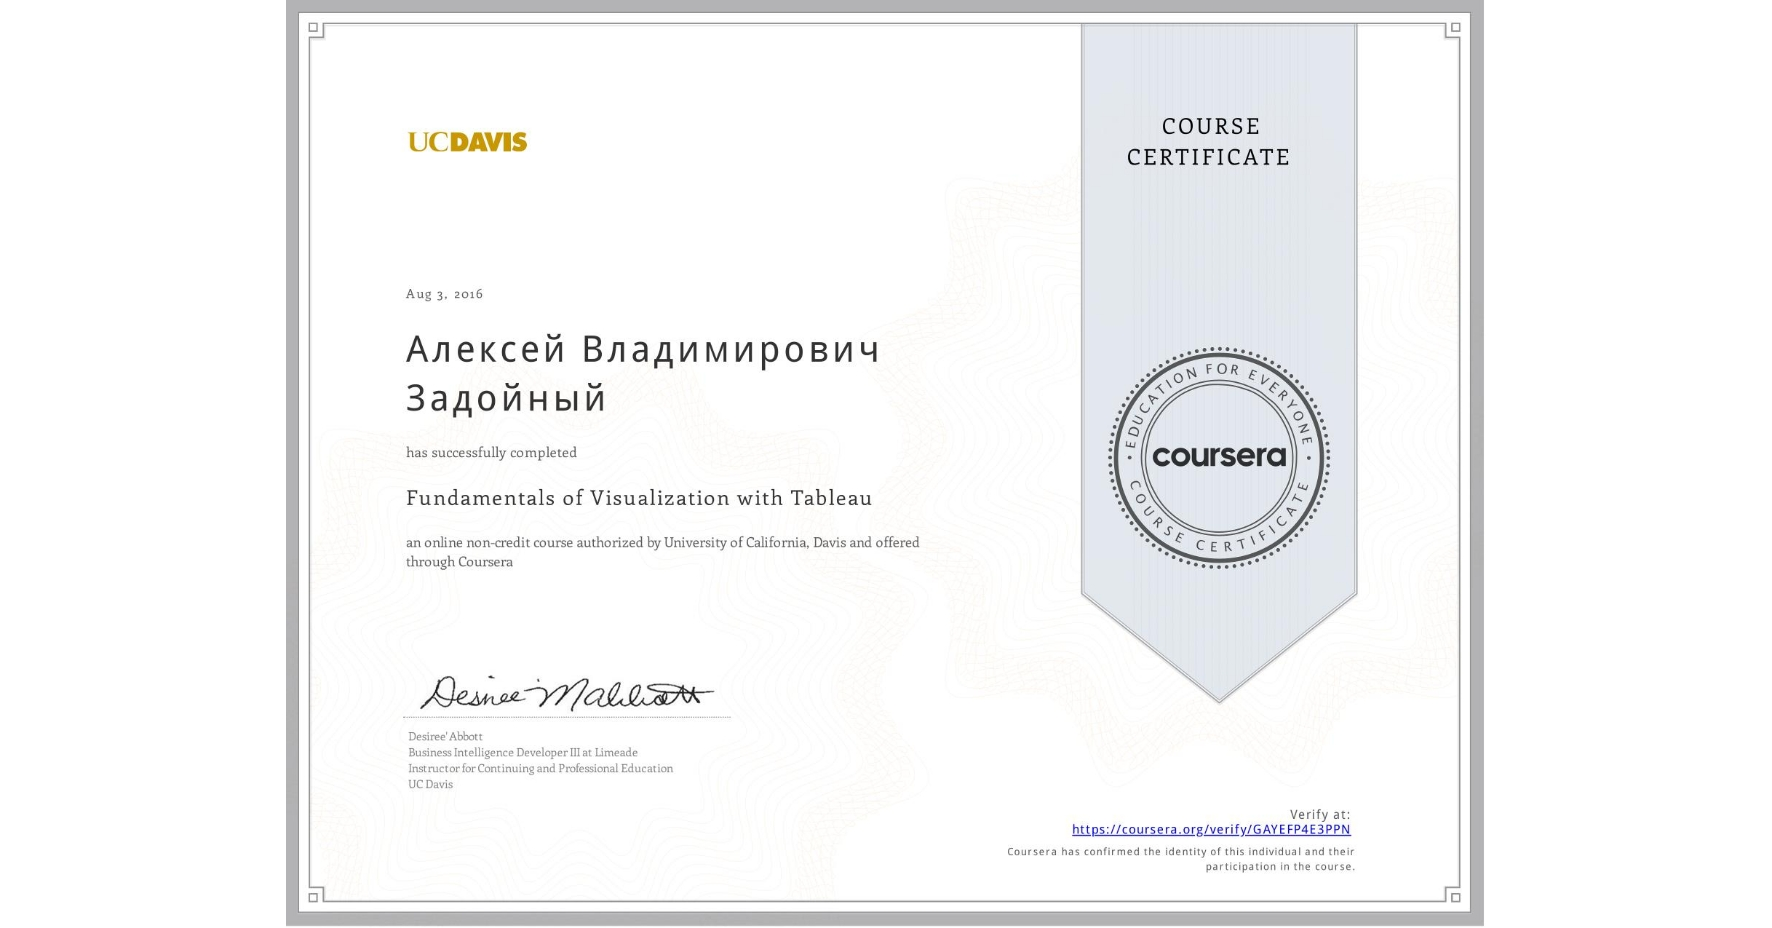 View certificate for Алексей Владимирович Задойный, Fundamentals of Visualization with Tableau, an online non-credit course authorized by University of California, Davis and offered through Coursera